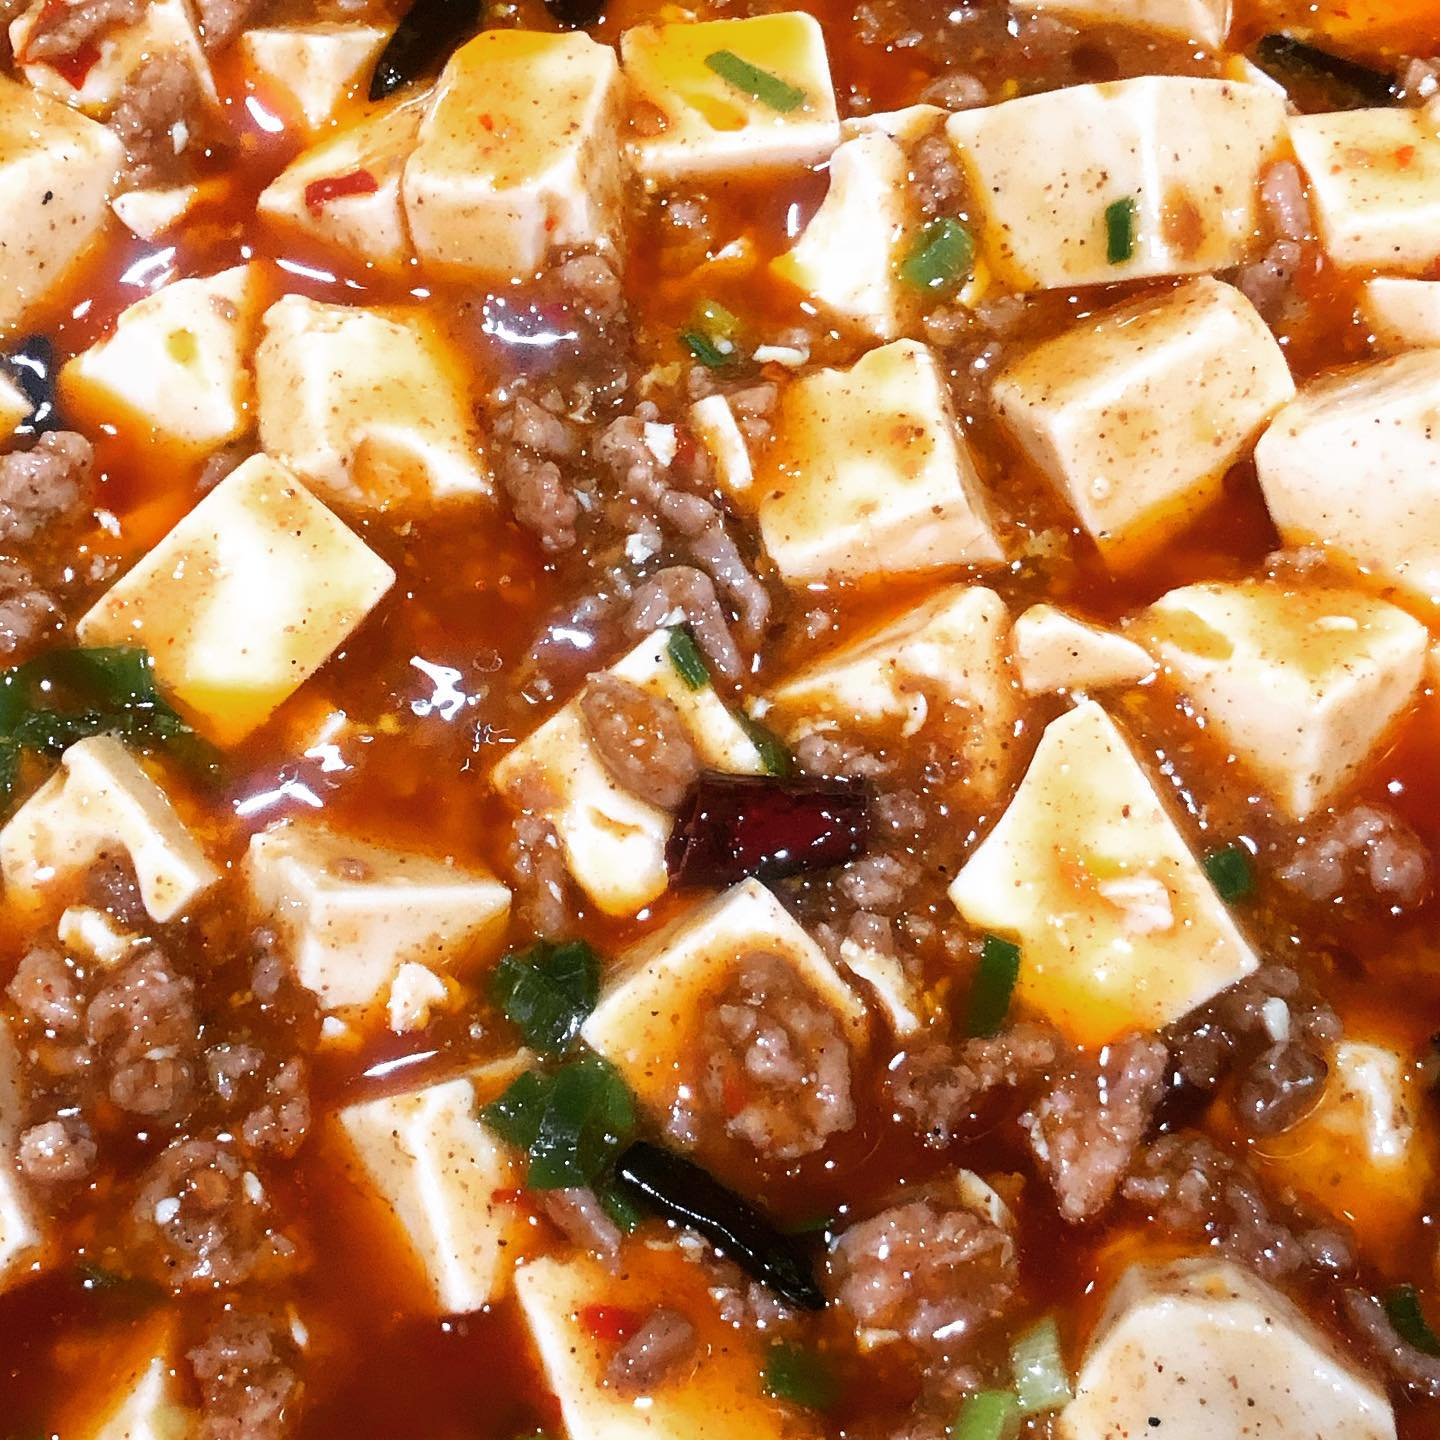 Getting better at making mapo tofu